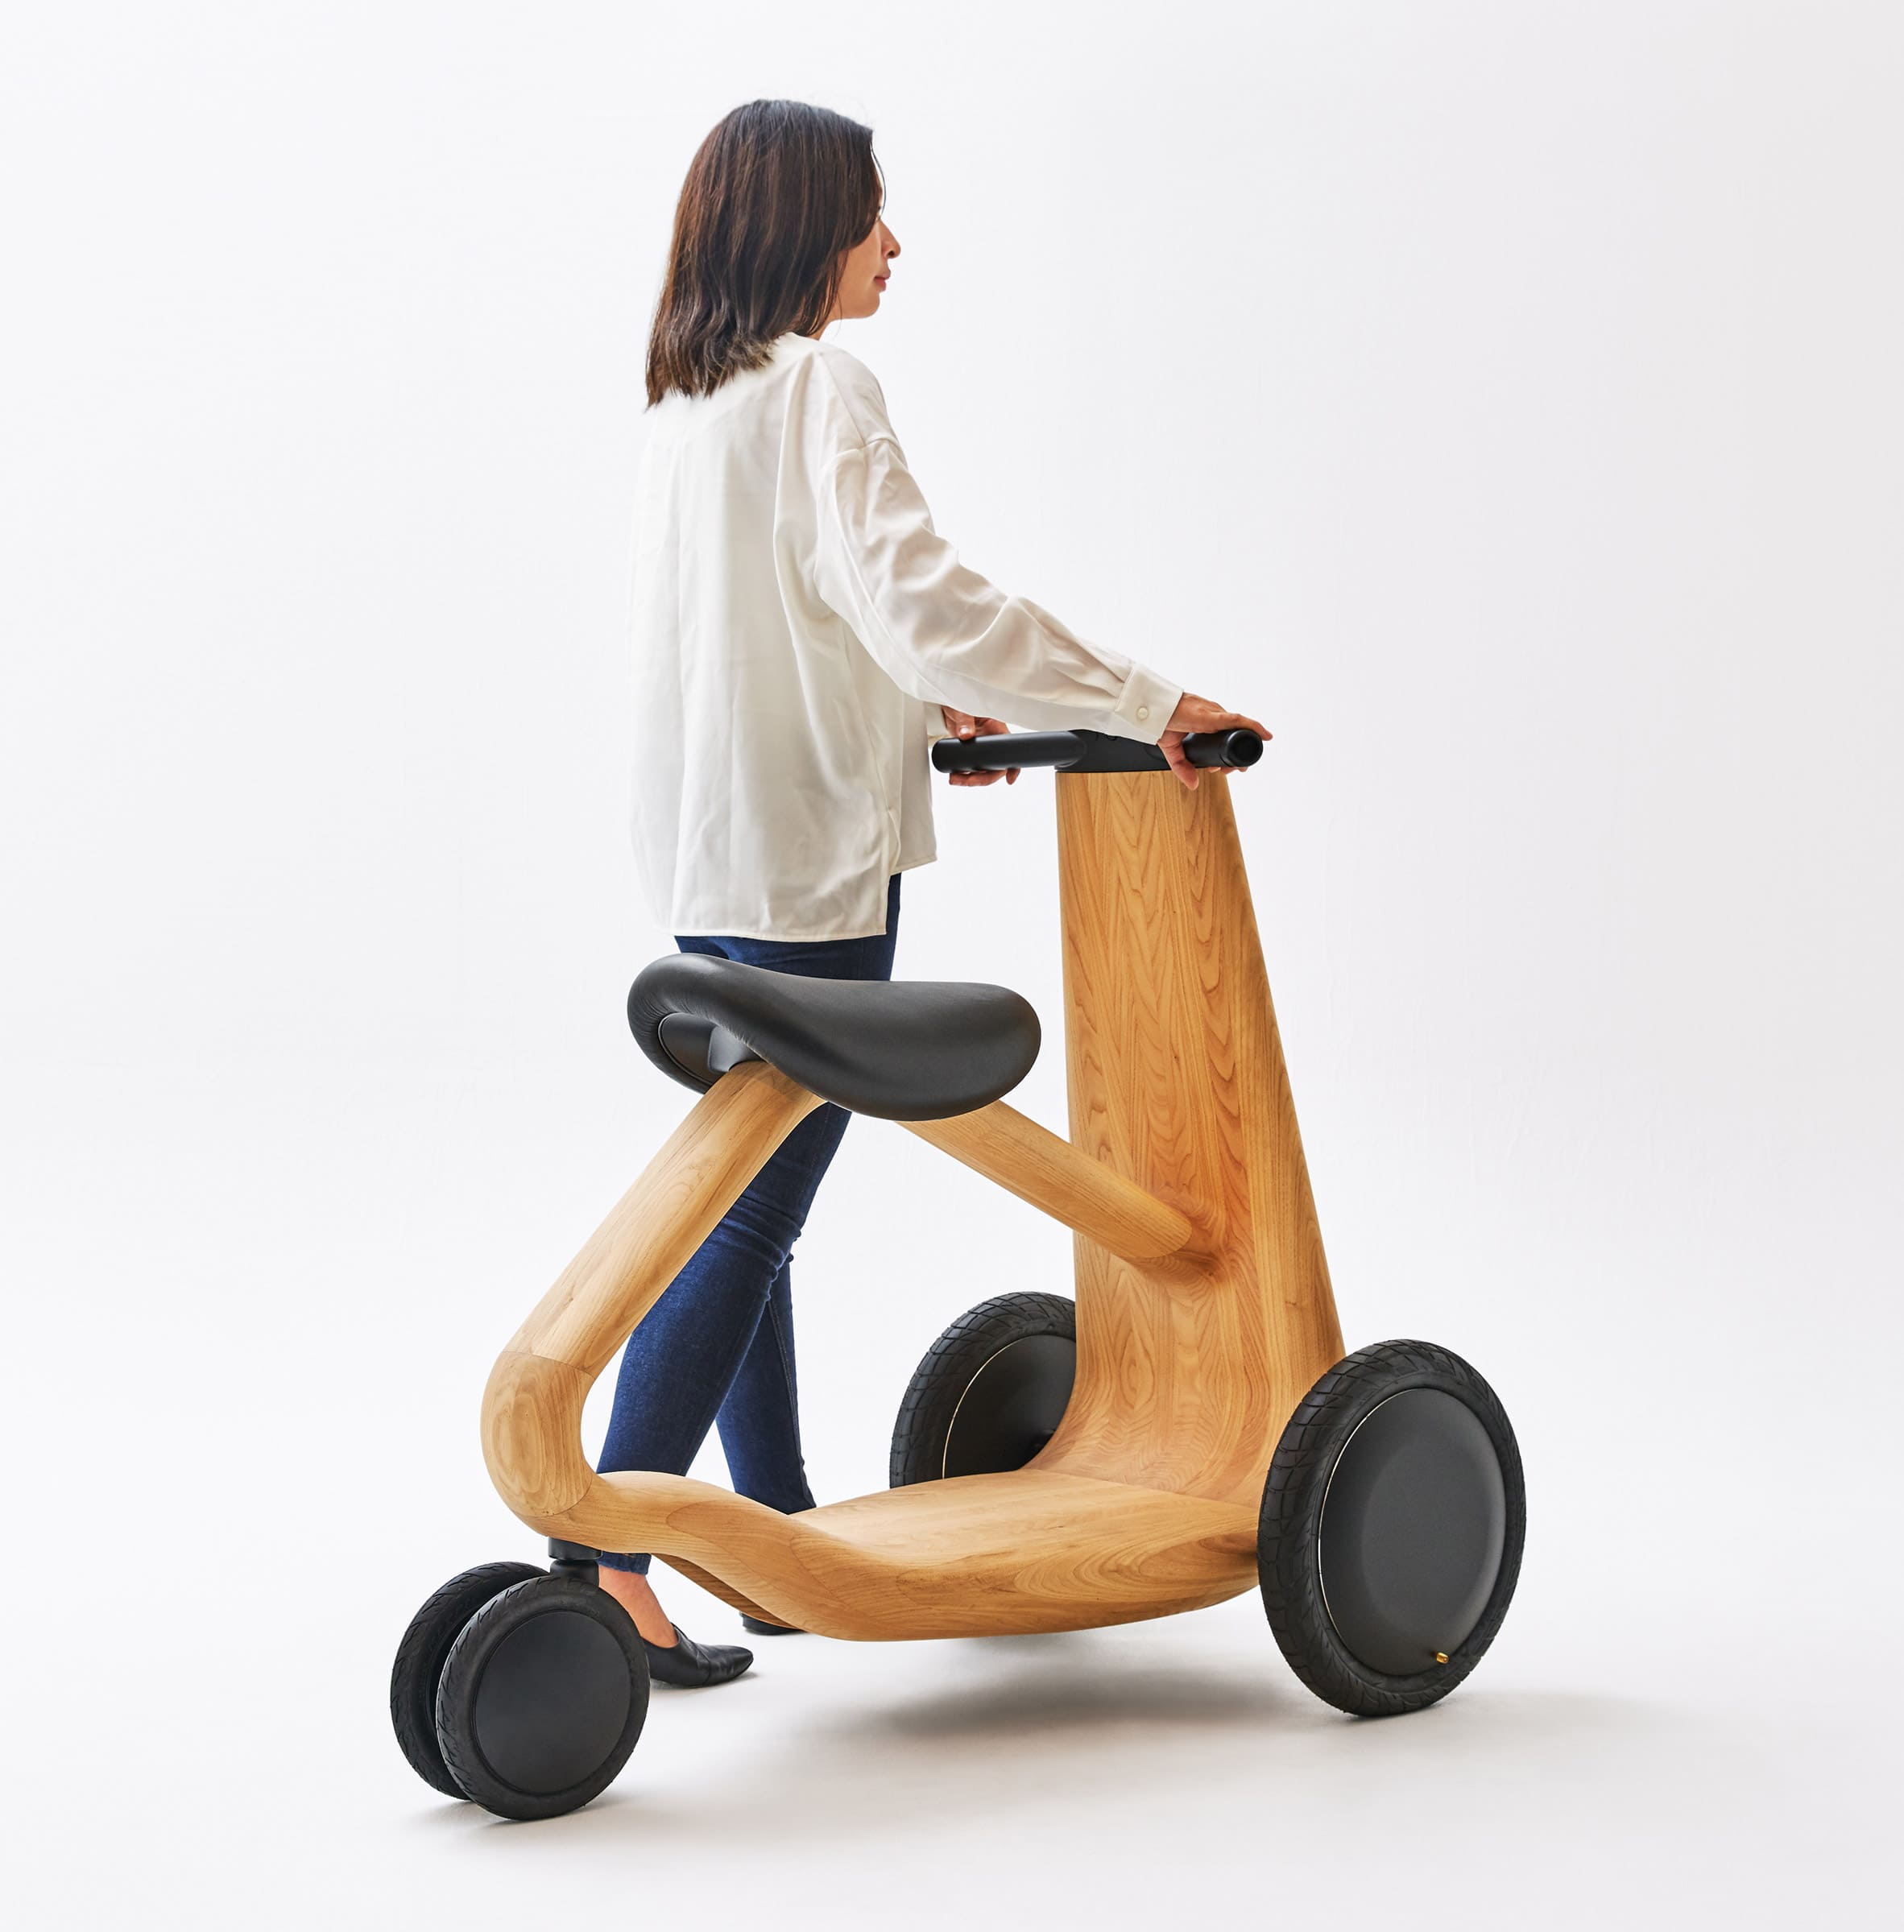 ily-ai-wooden-scooter-design_dezeen_2364_col_4